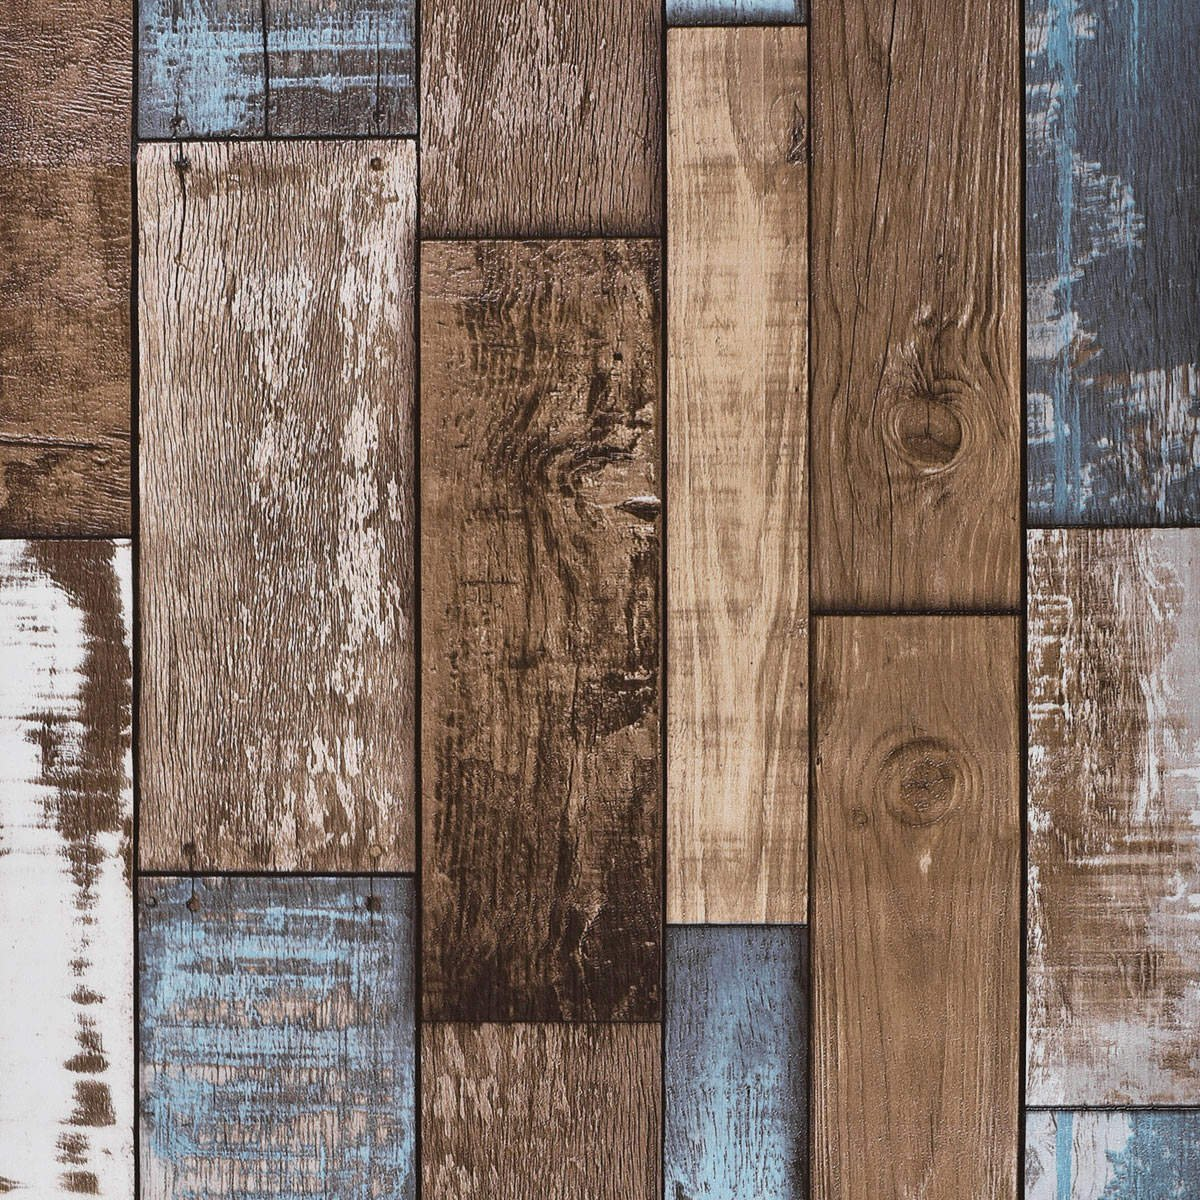 Wallpaper wallpapering supplies page 5 blowout sale - Faux wood plank wallpaper ...